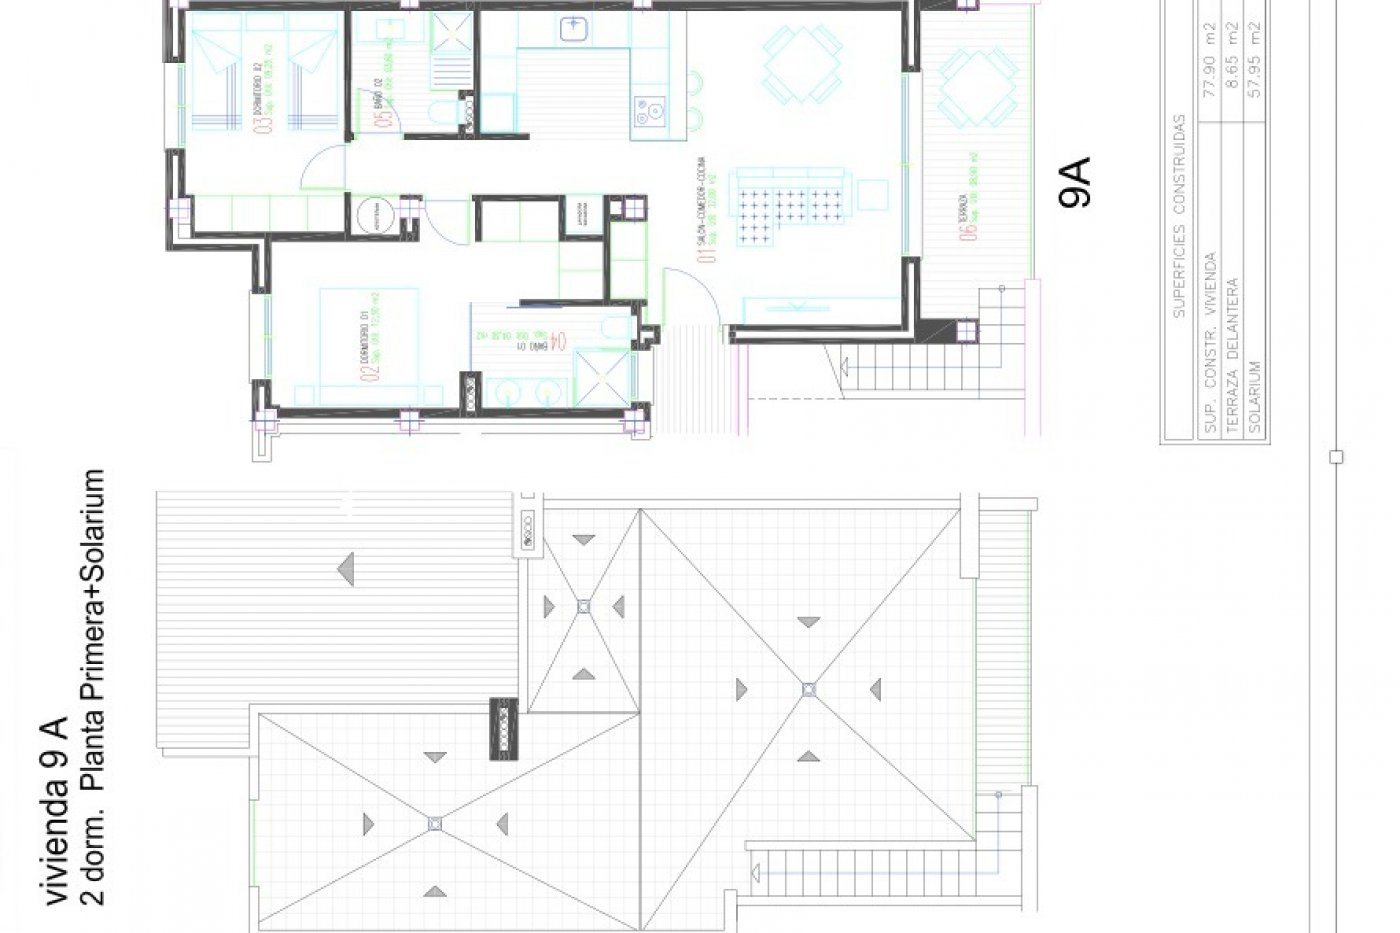 Gallery Image 1 of Lovely new build 2 bed penthouse with 2 bath and 58 m2 roof terrasse